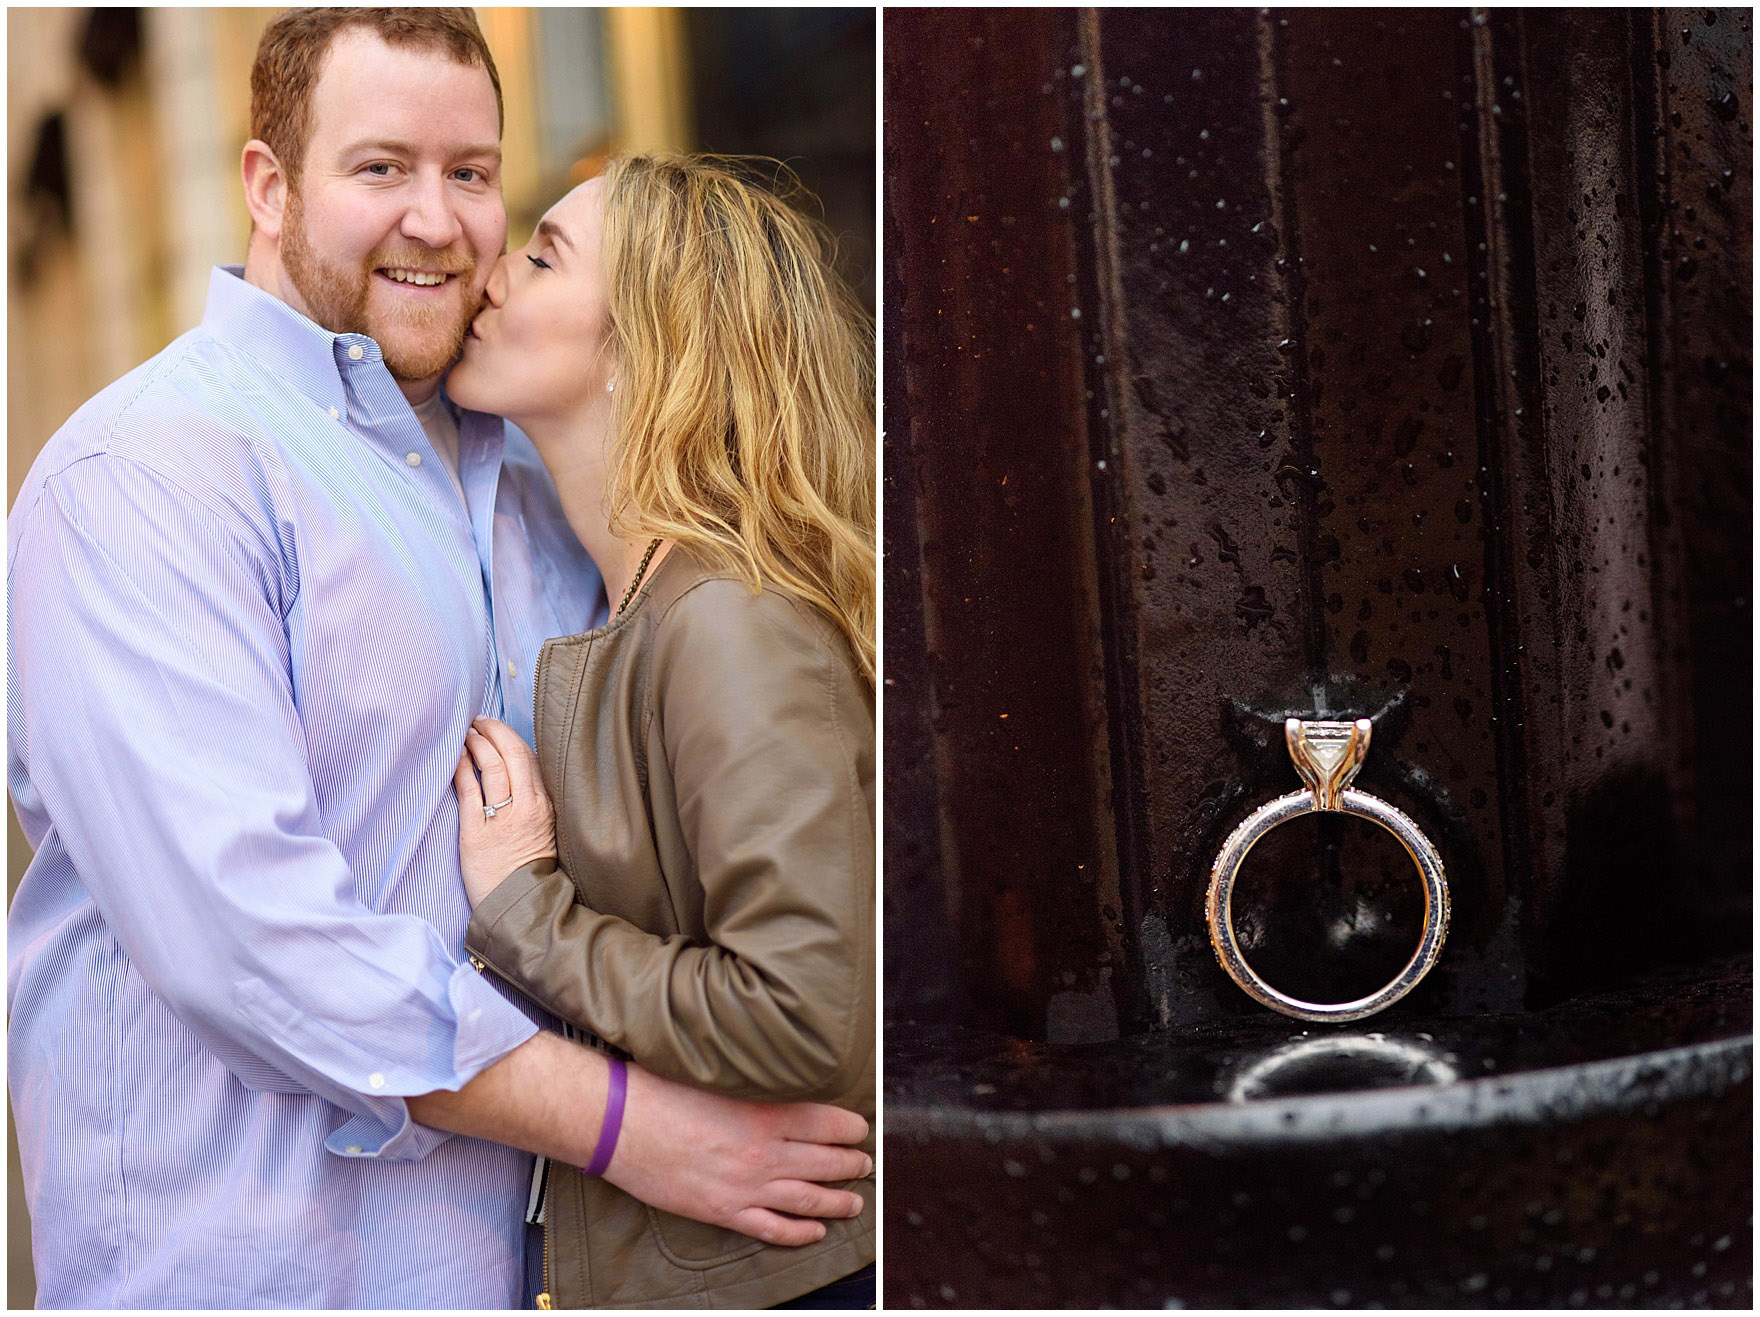 A couple embraces during a downtown Chicago city engagement photography session.